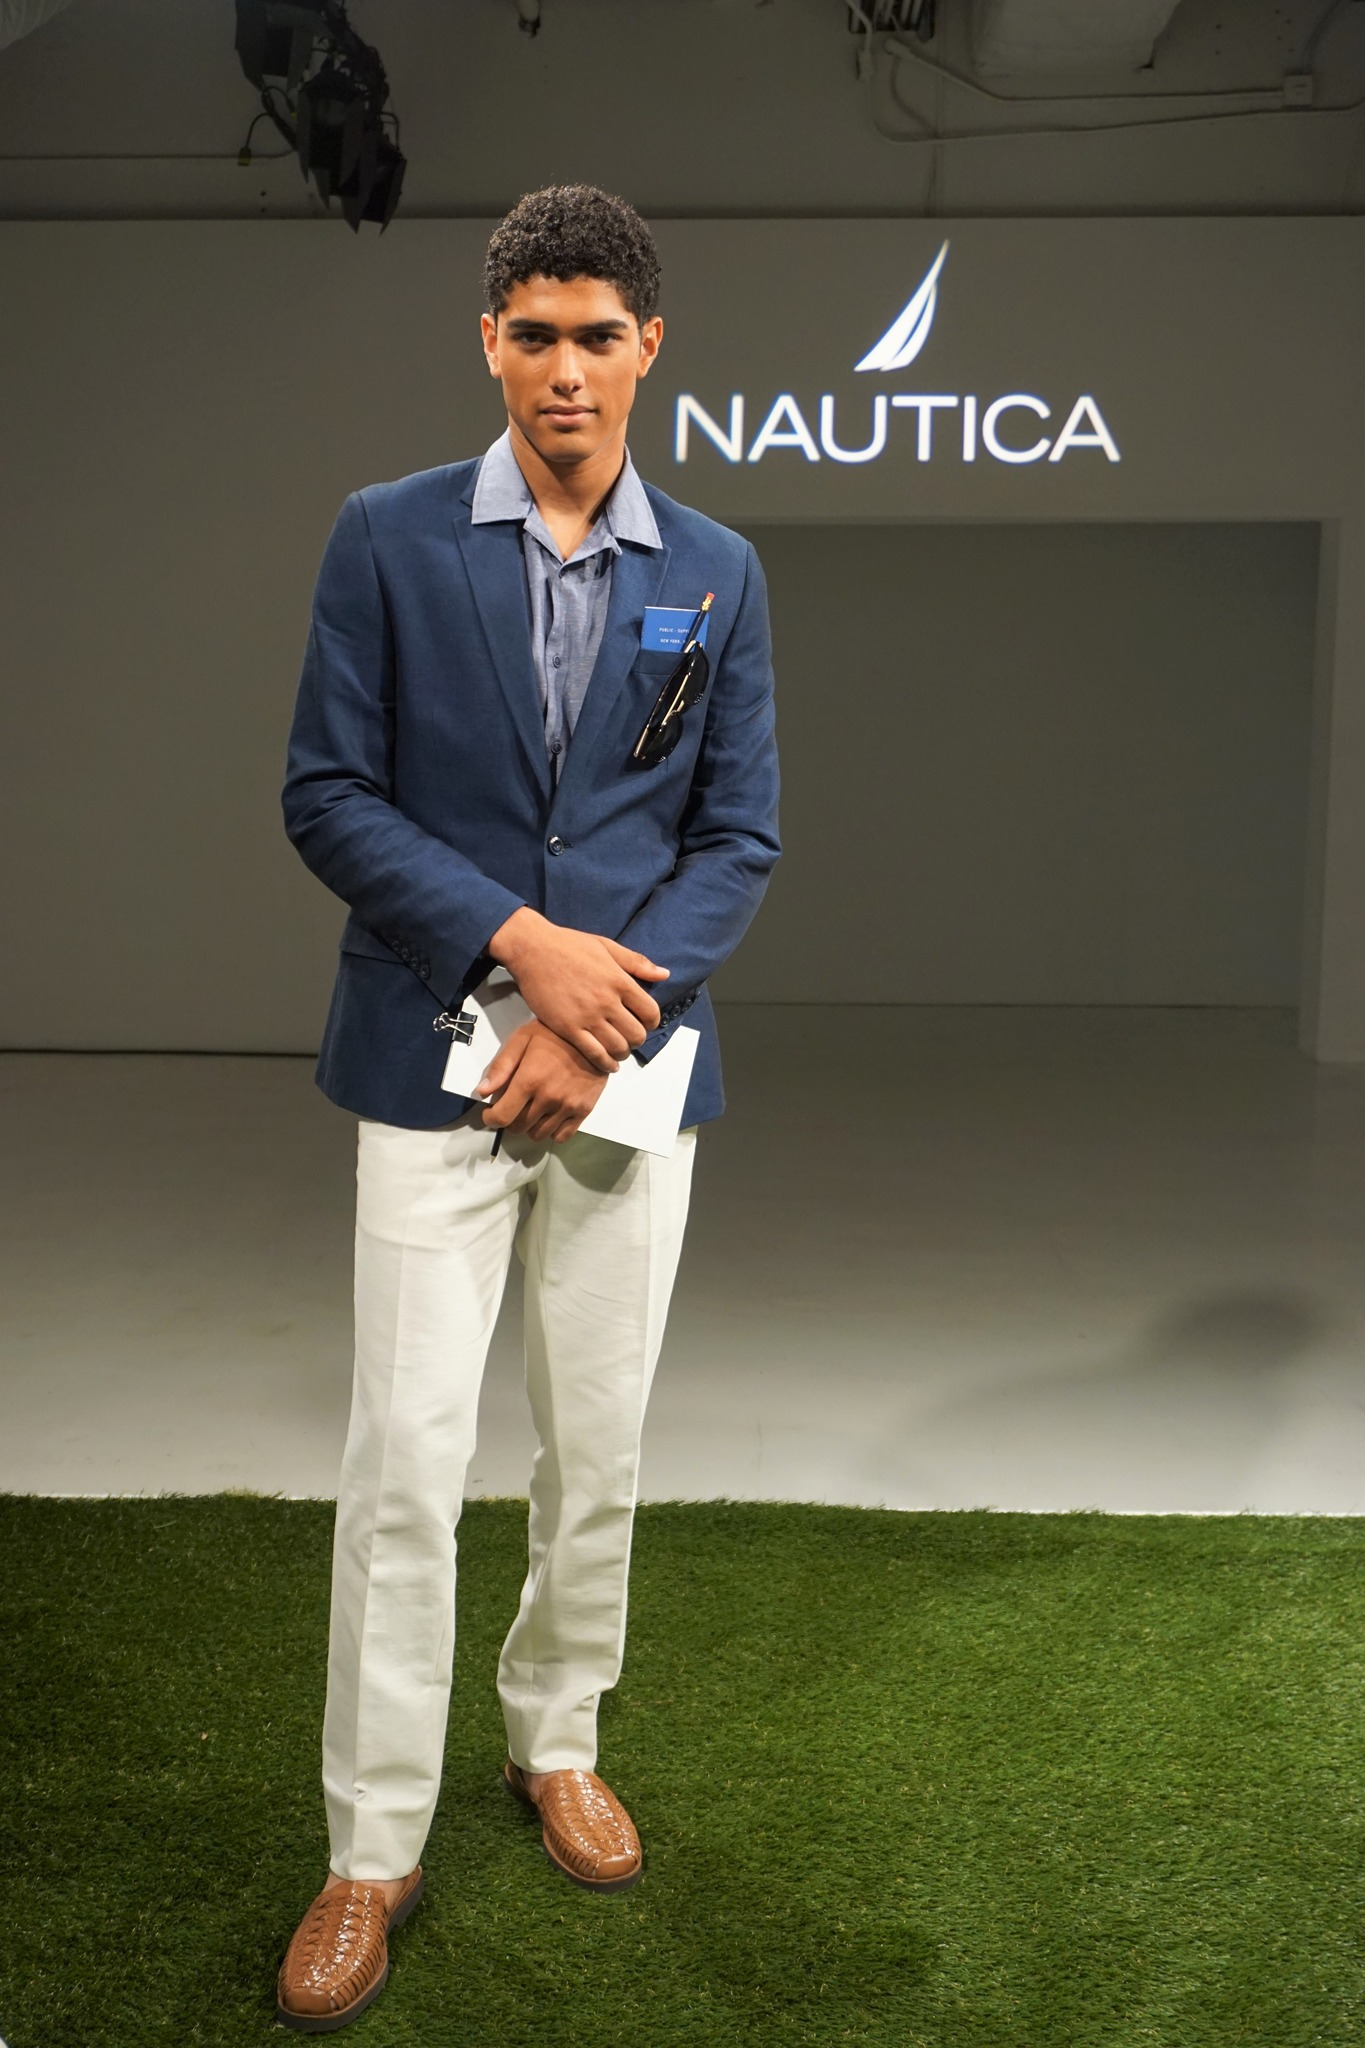 nautica-menswear-model